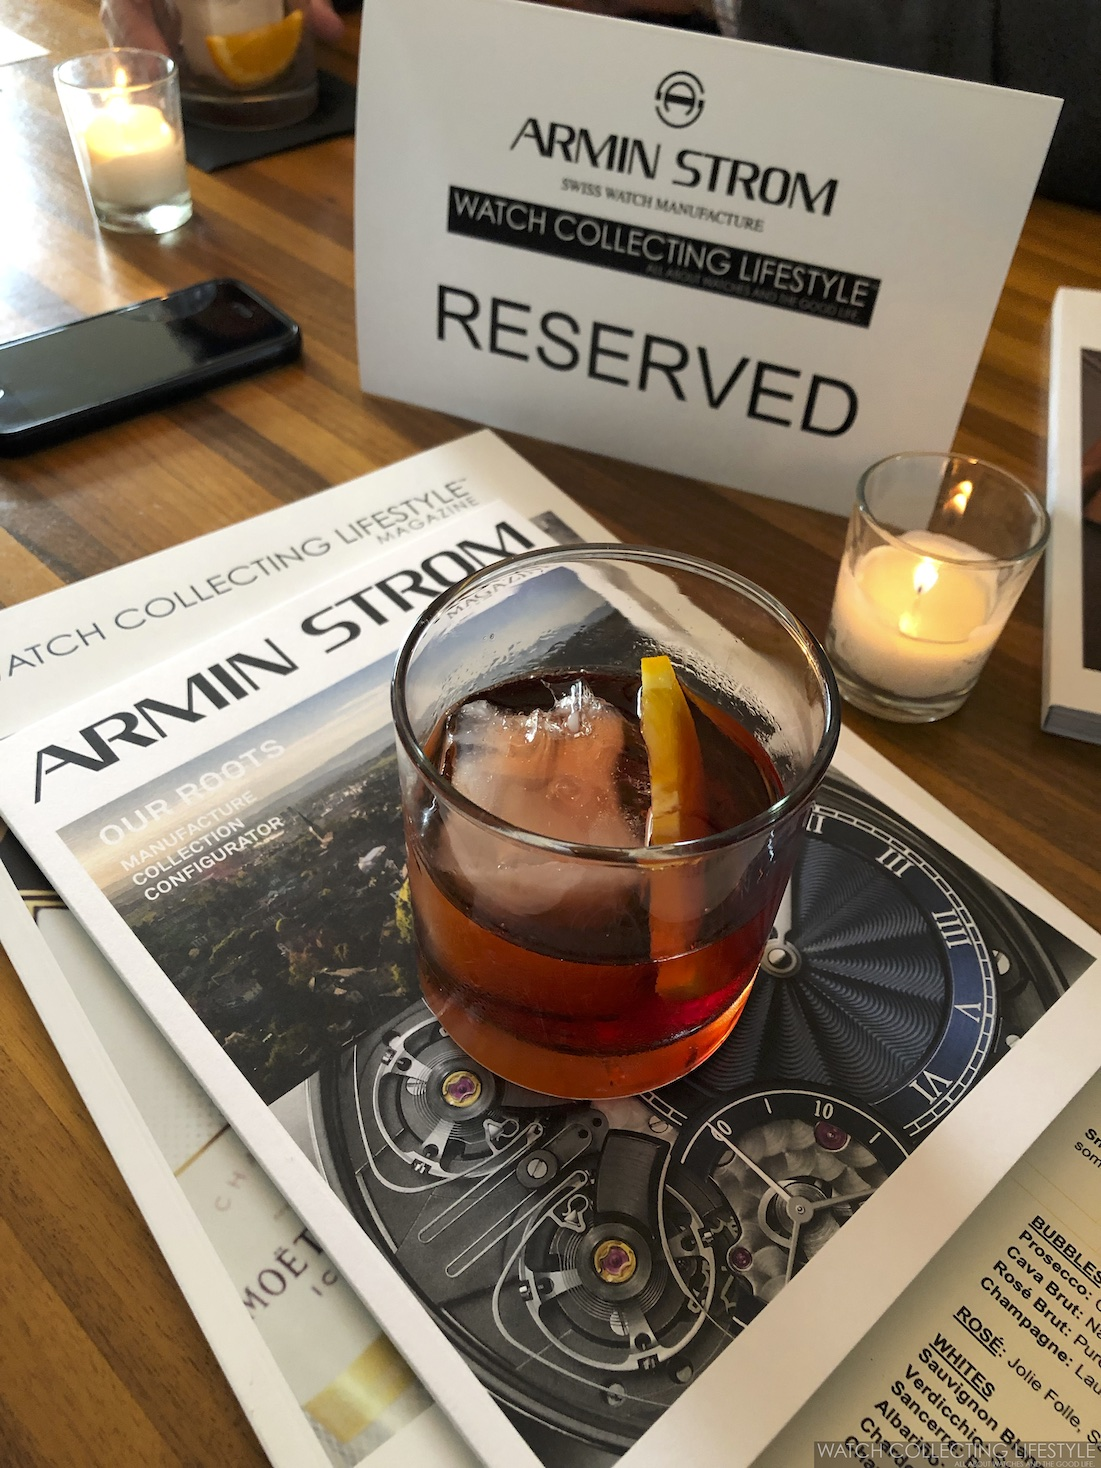 Armin Strom x Watch Collecting Lifestyle